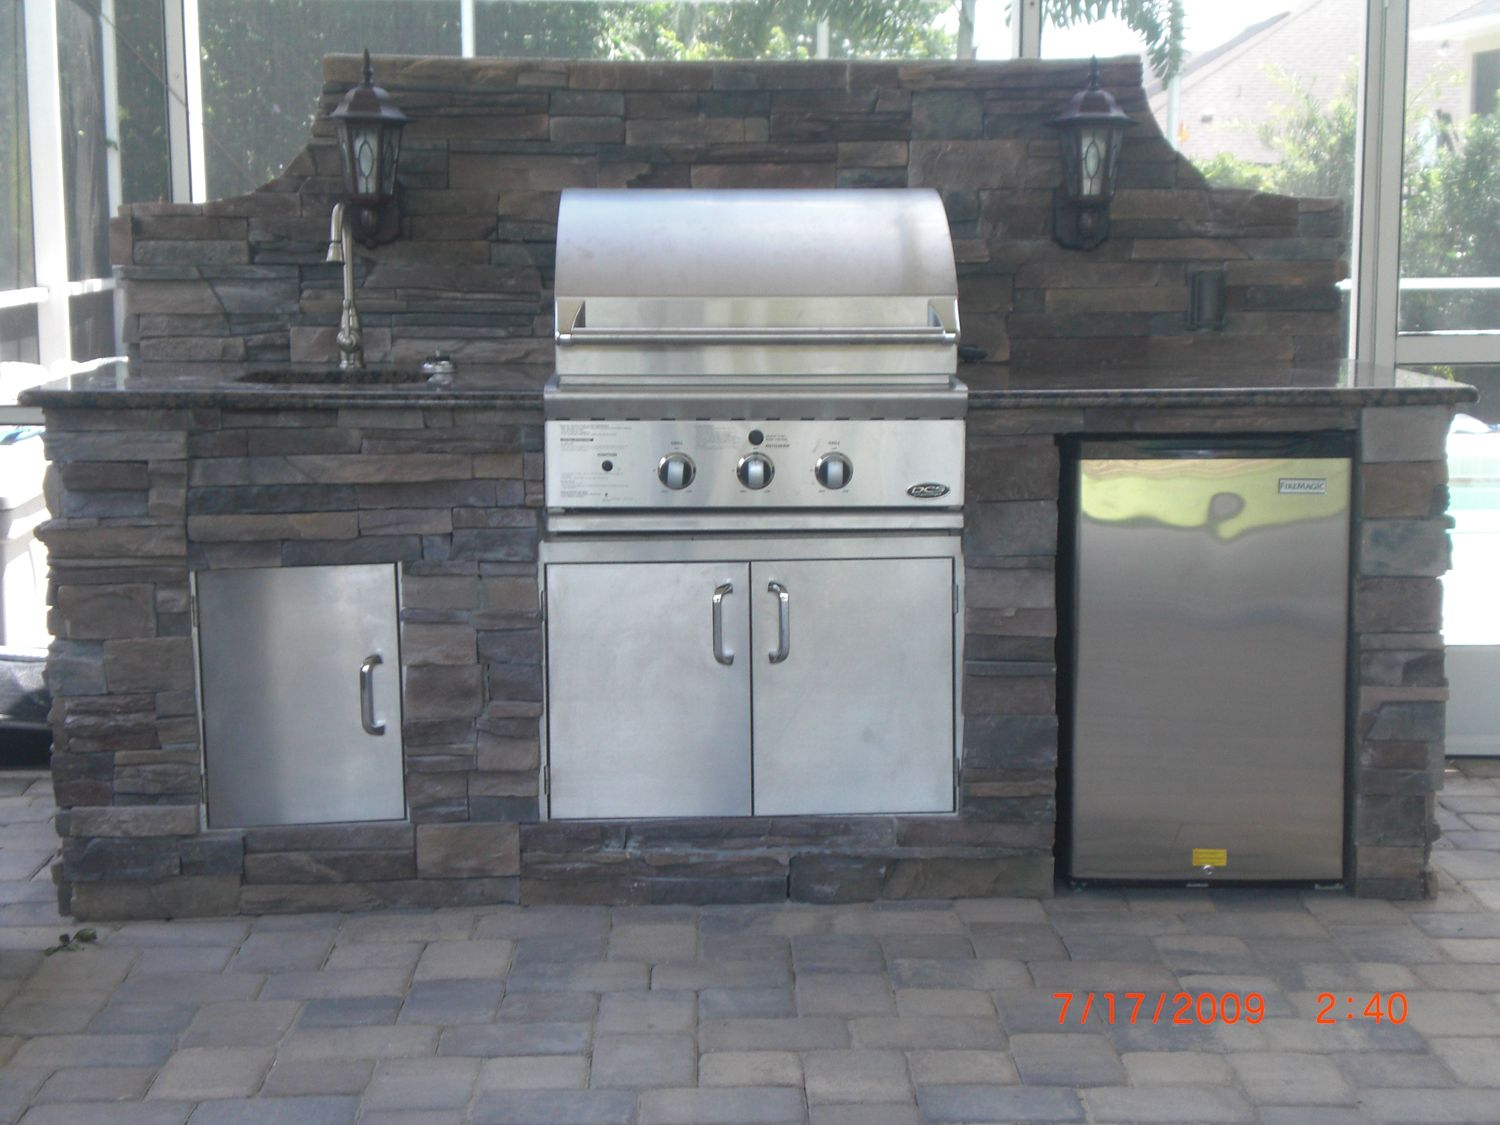 outdoor kitchens orlando stand alone cabinet for kitchen grill orlandofl jpg 1500 1125 patio ideas we specialize in custom 18 years serving cfl free estimates 947 7737 inc